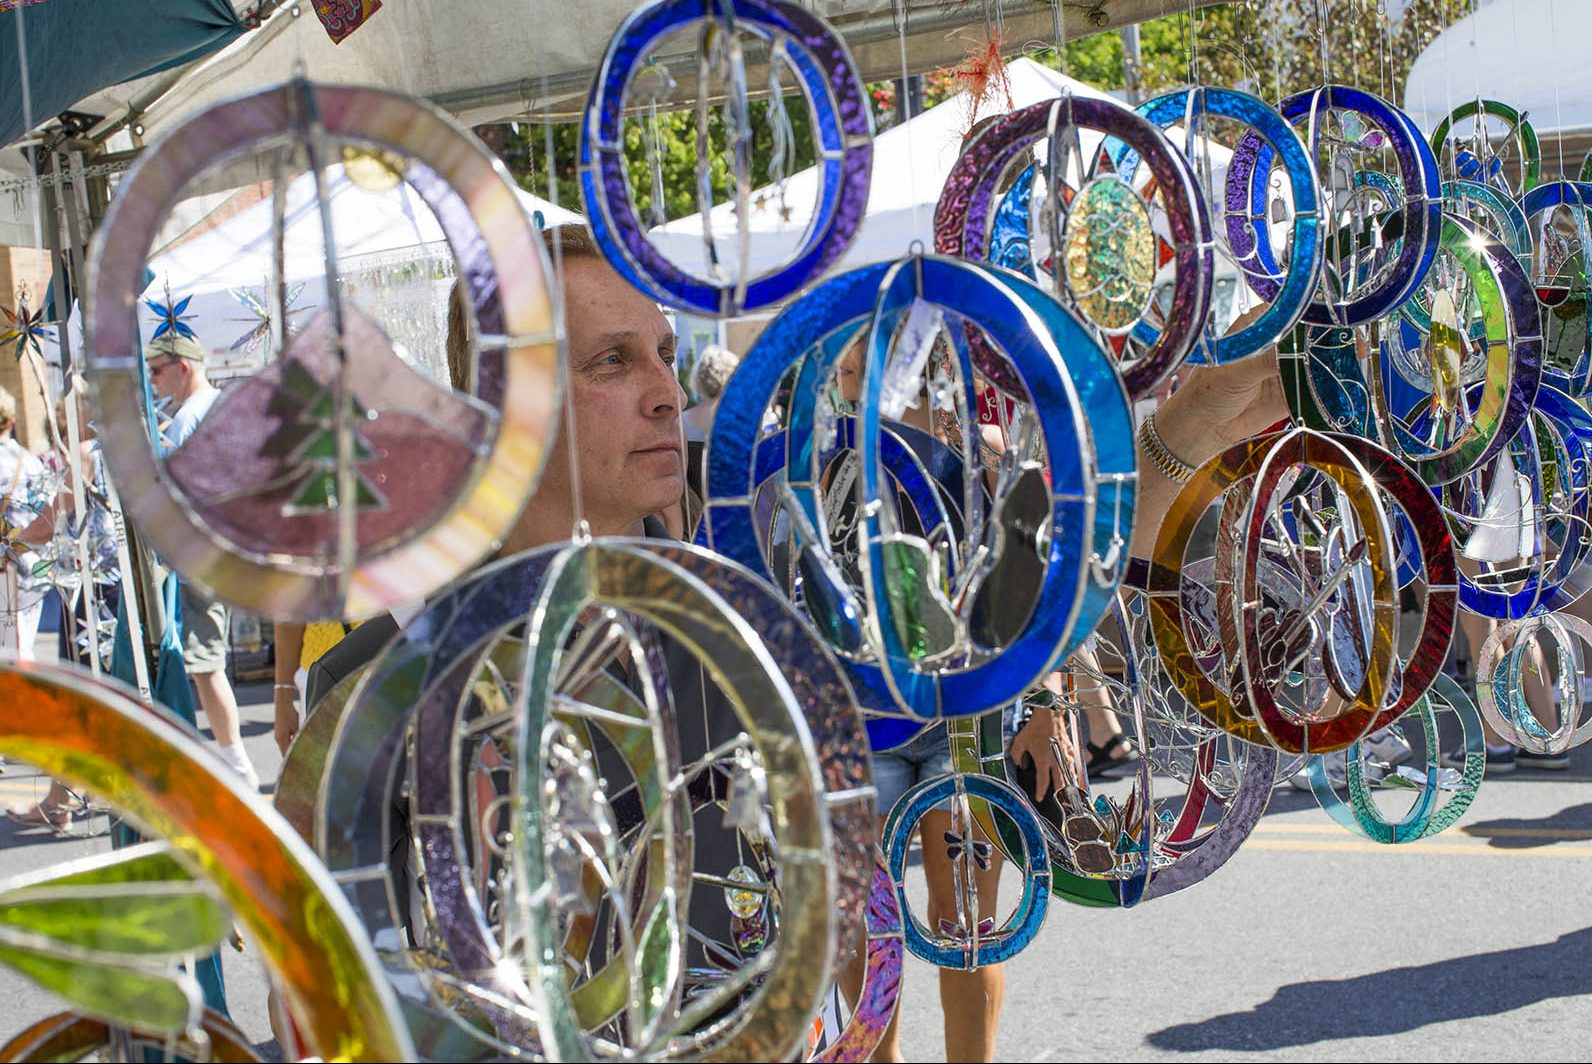 Kevin Schenk of Cheektowaga examines glass art from Katie Knopp of Clyde, North Carolina at the Elmwood Avenue Festival for the Arts, Saturday, Aug. 27, 2016. (Derek Gee/Buffalo News)